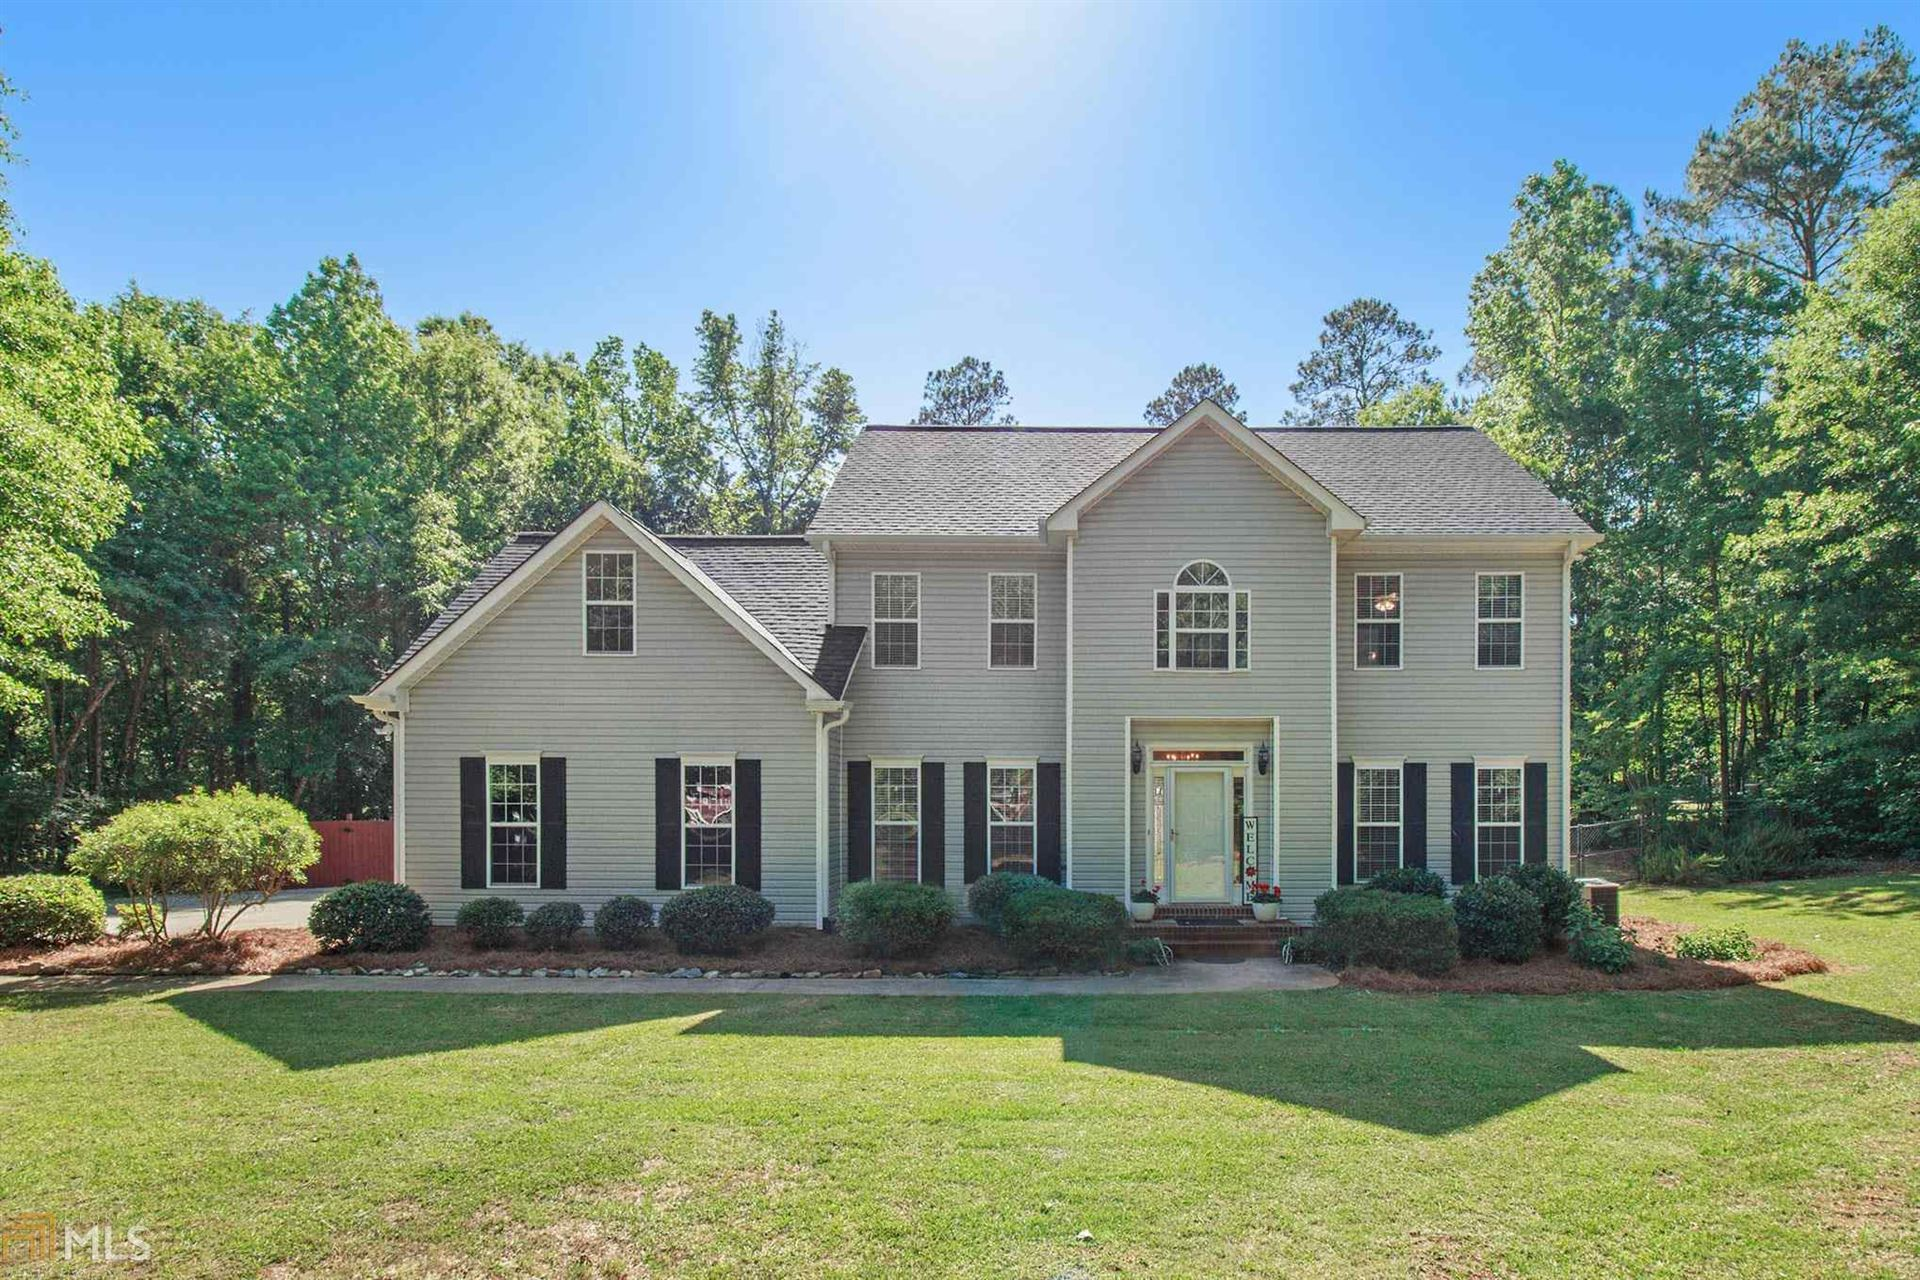 476 Harbour Shores Dr, Jackson, GA 30233 - #: 8972926